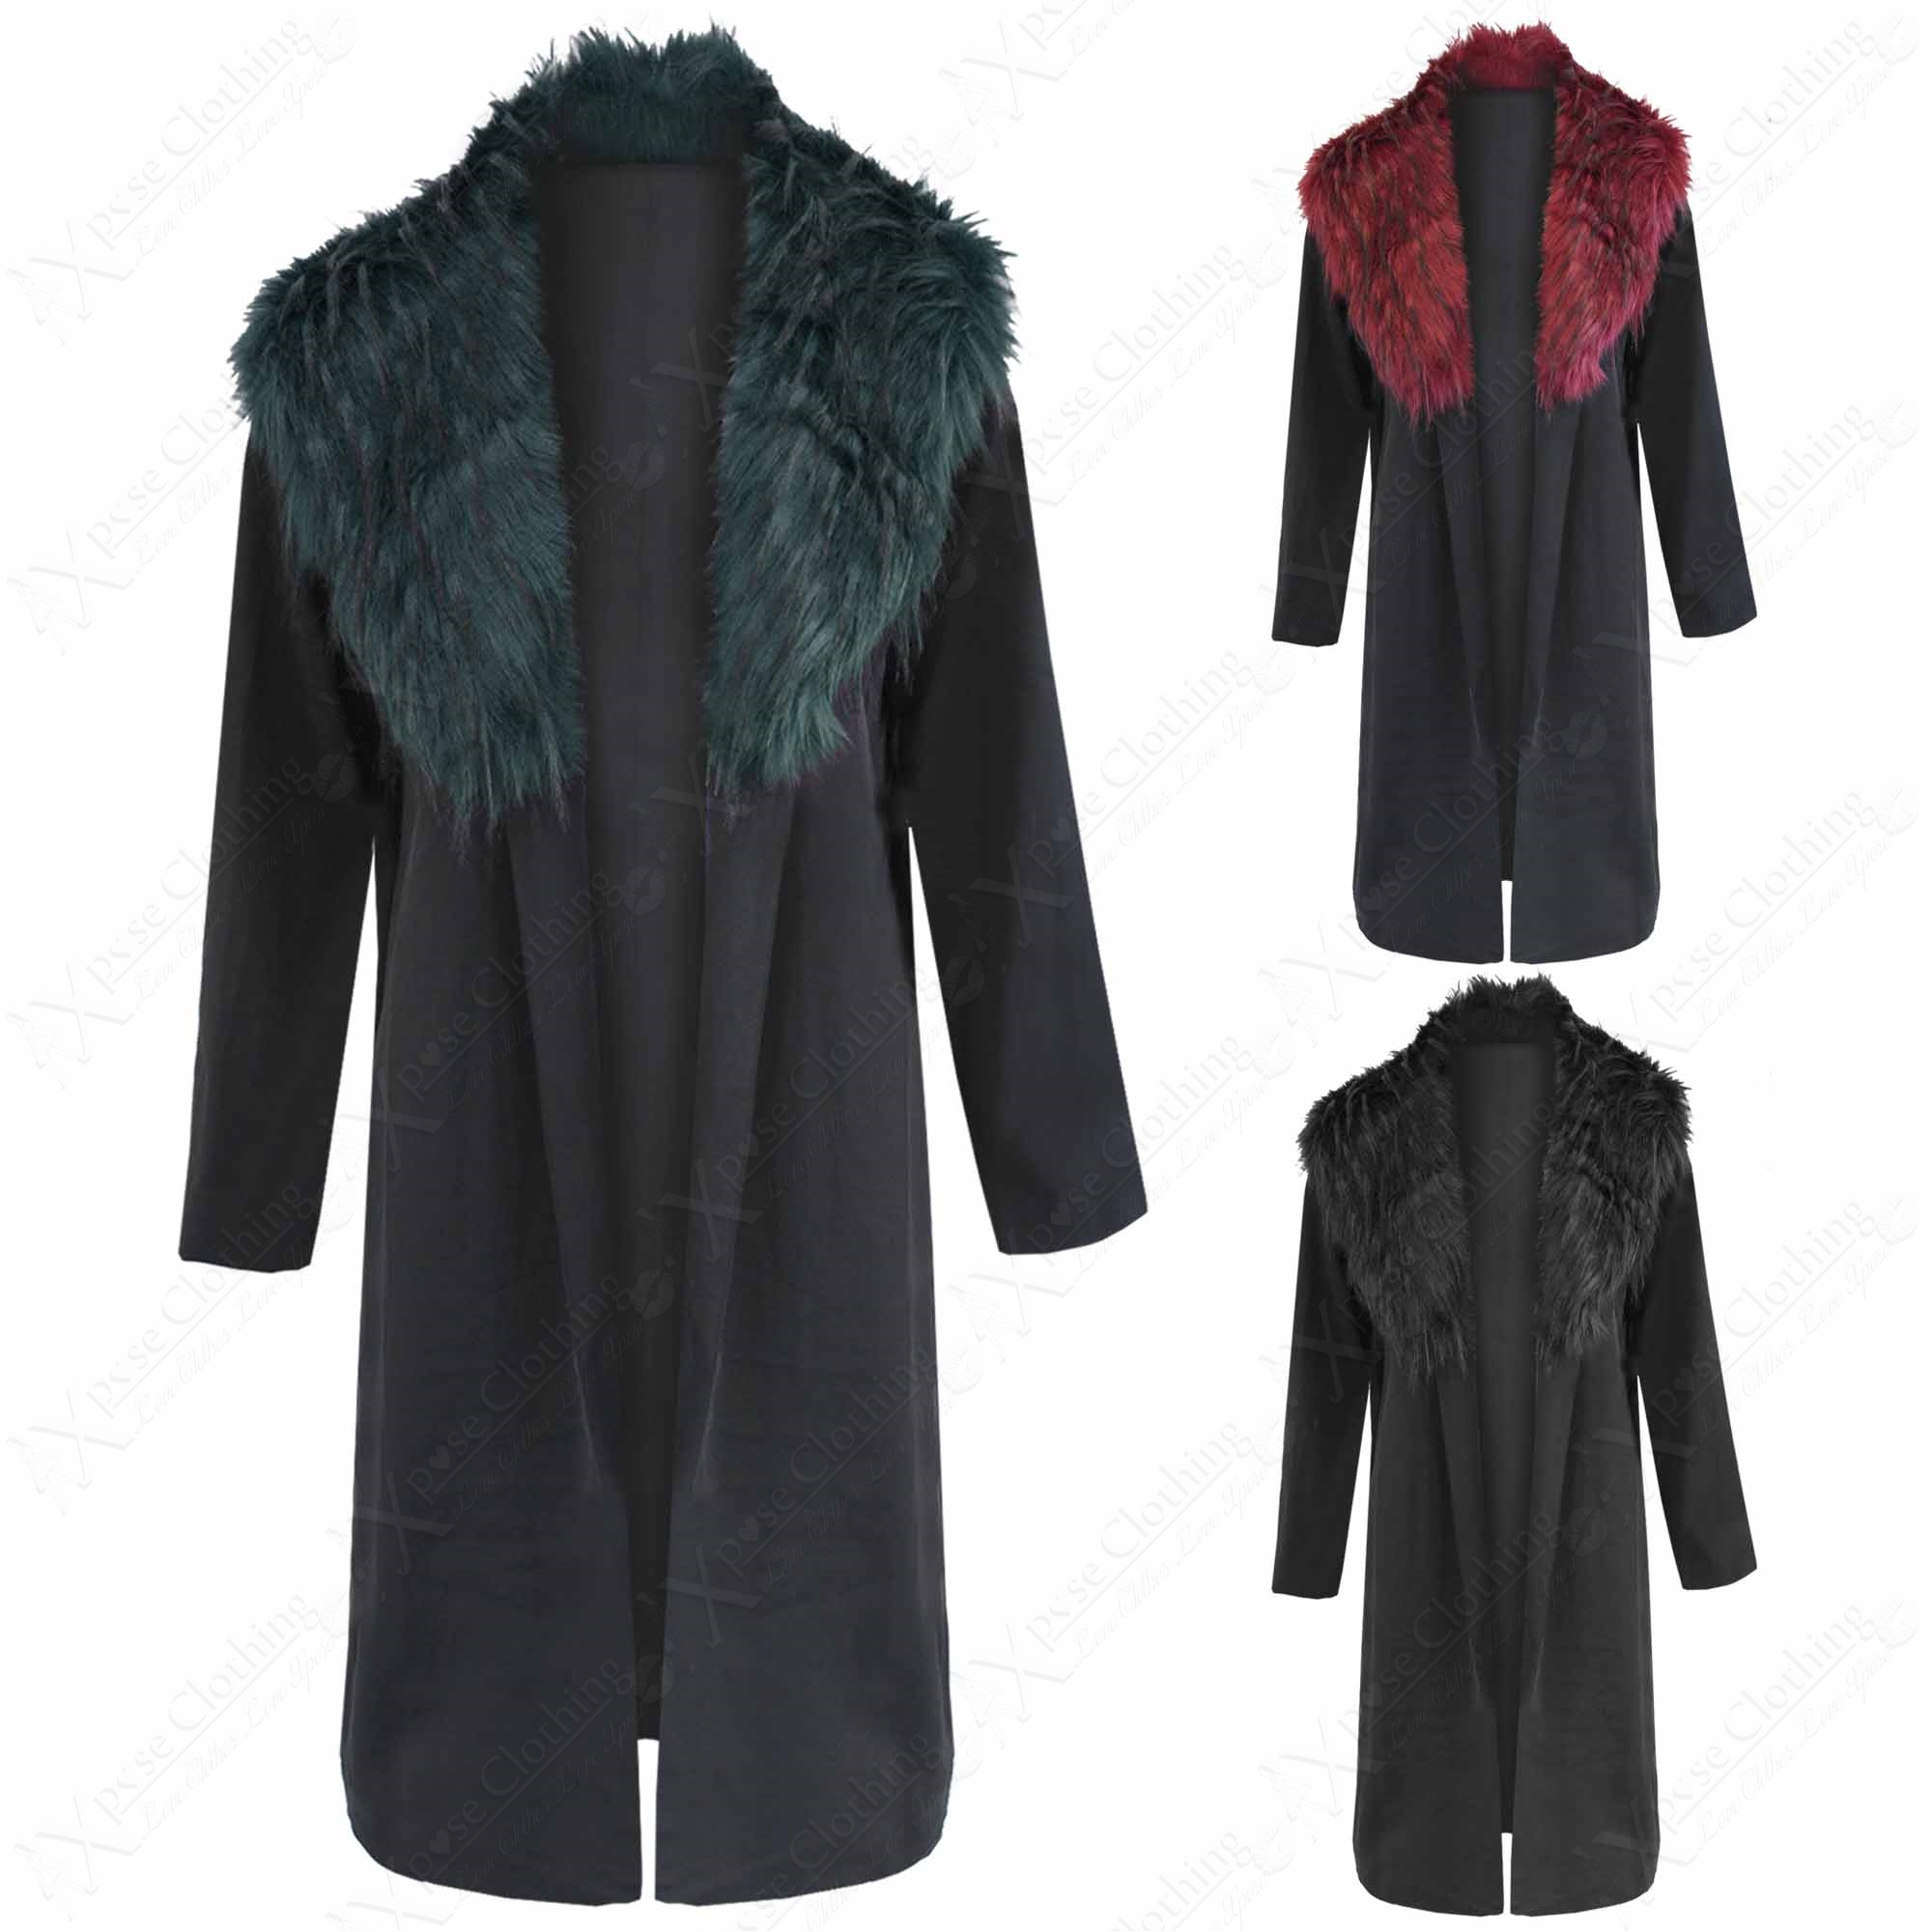 NEW LADIES BLACK COAT FAUX FUR COLLAR LOOK WOMEN CELEB DUSTER ...